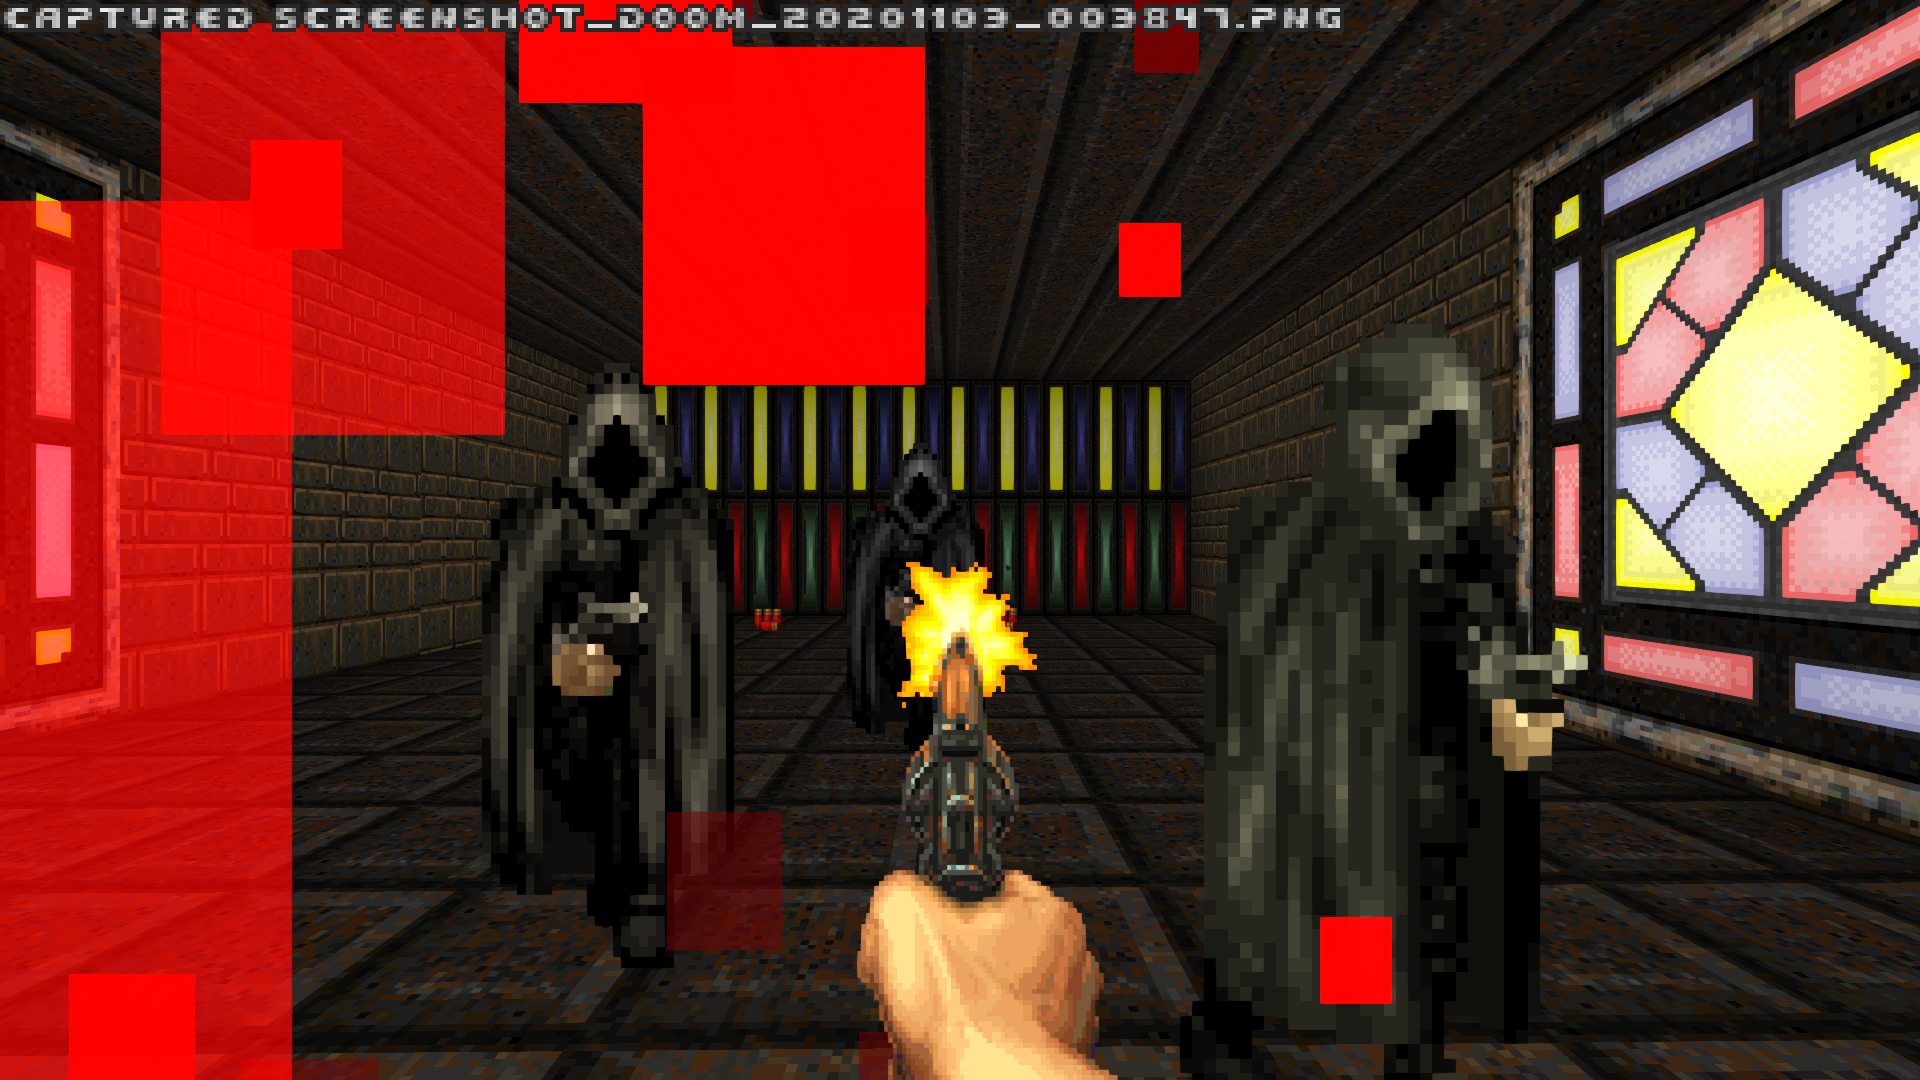 Screenshot_Doom_20201103_003849.png